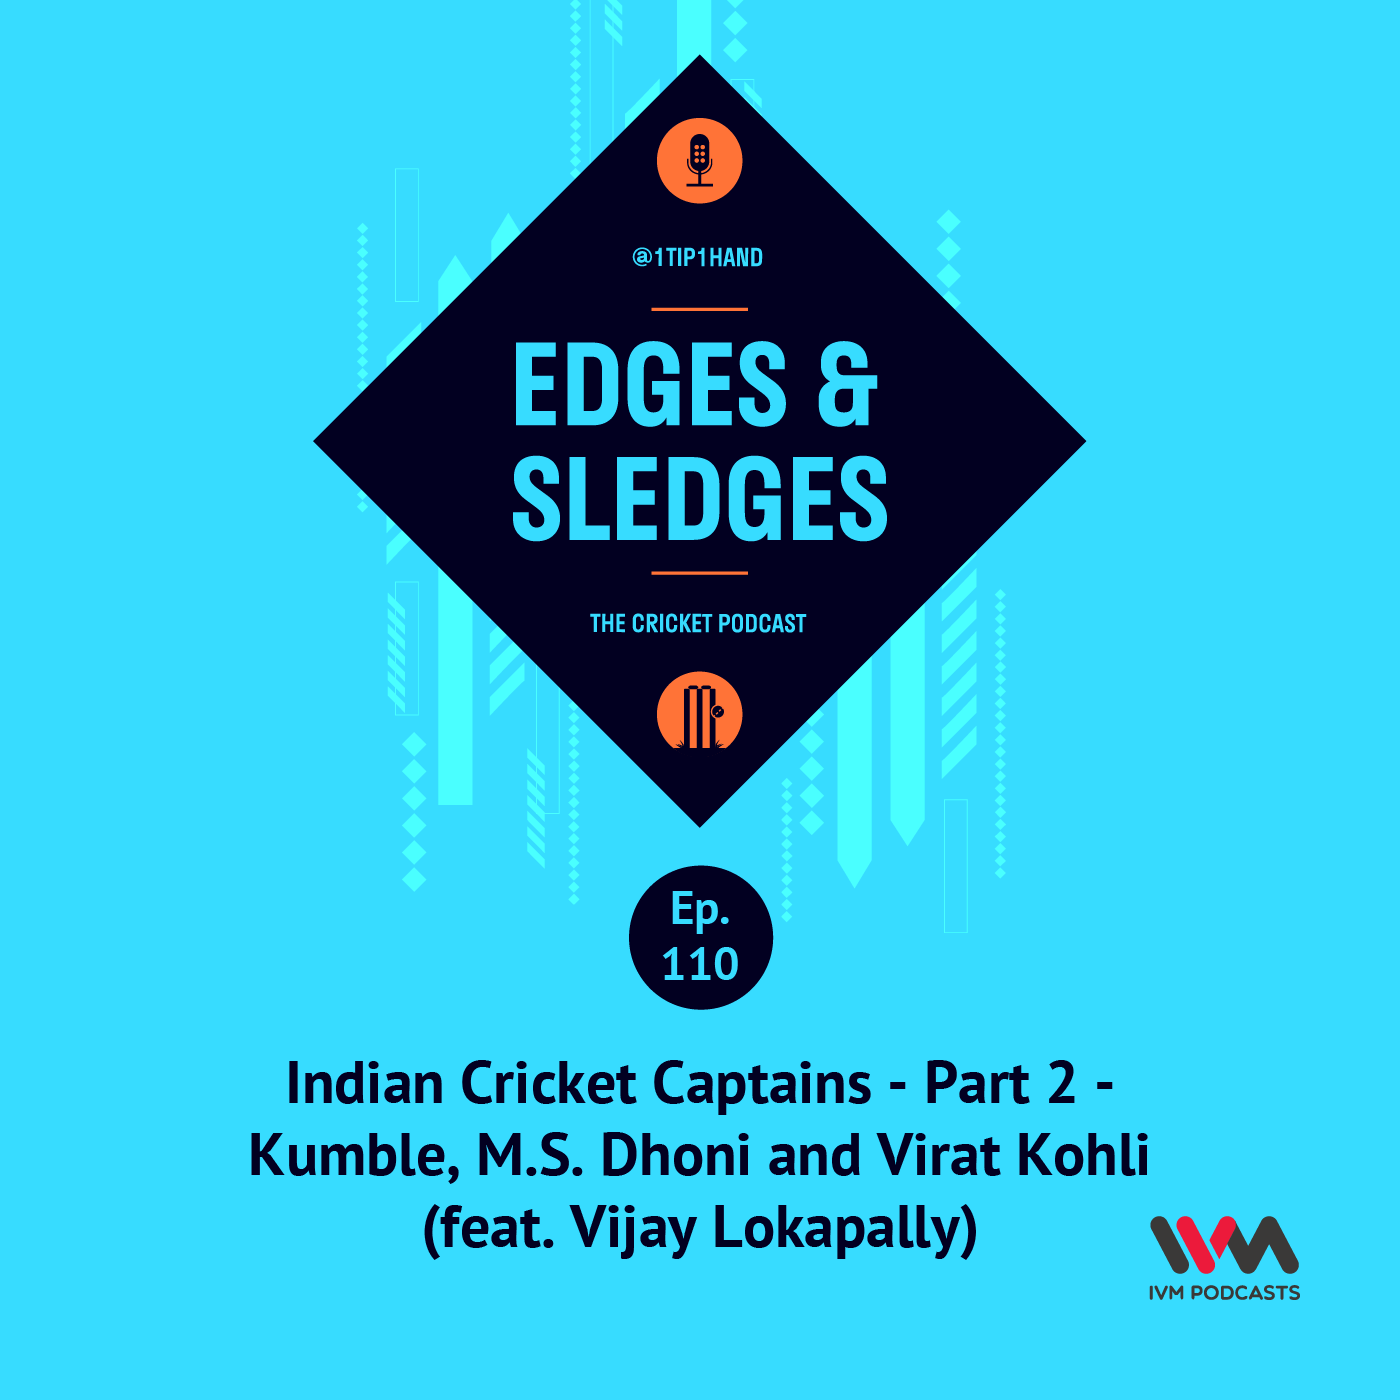 Ep. 110: Indian Cricket Captains - Part 2 - Kumble, M.S. Dhoni and Virat Kohli (feat. Vijay Lokapally)